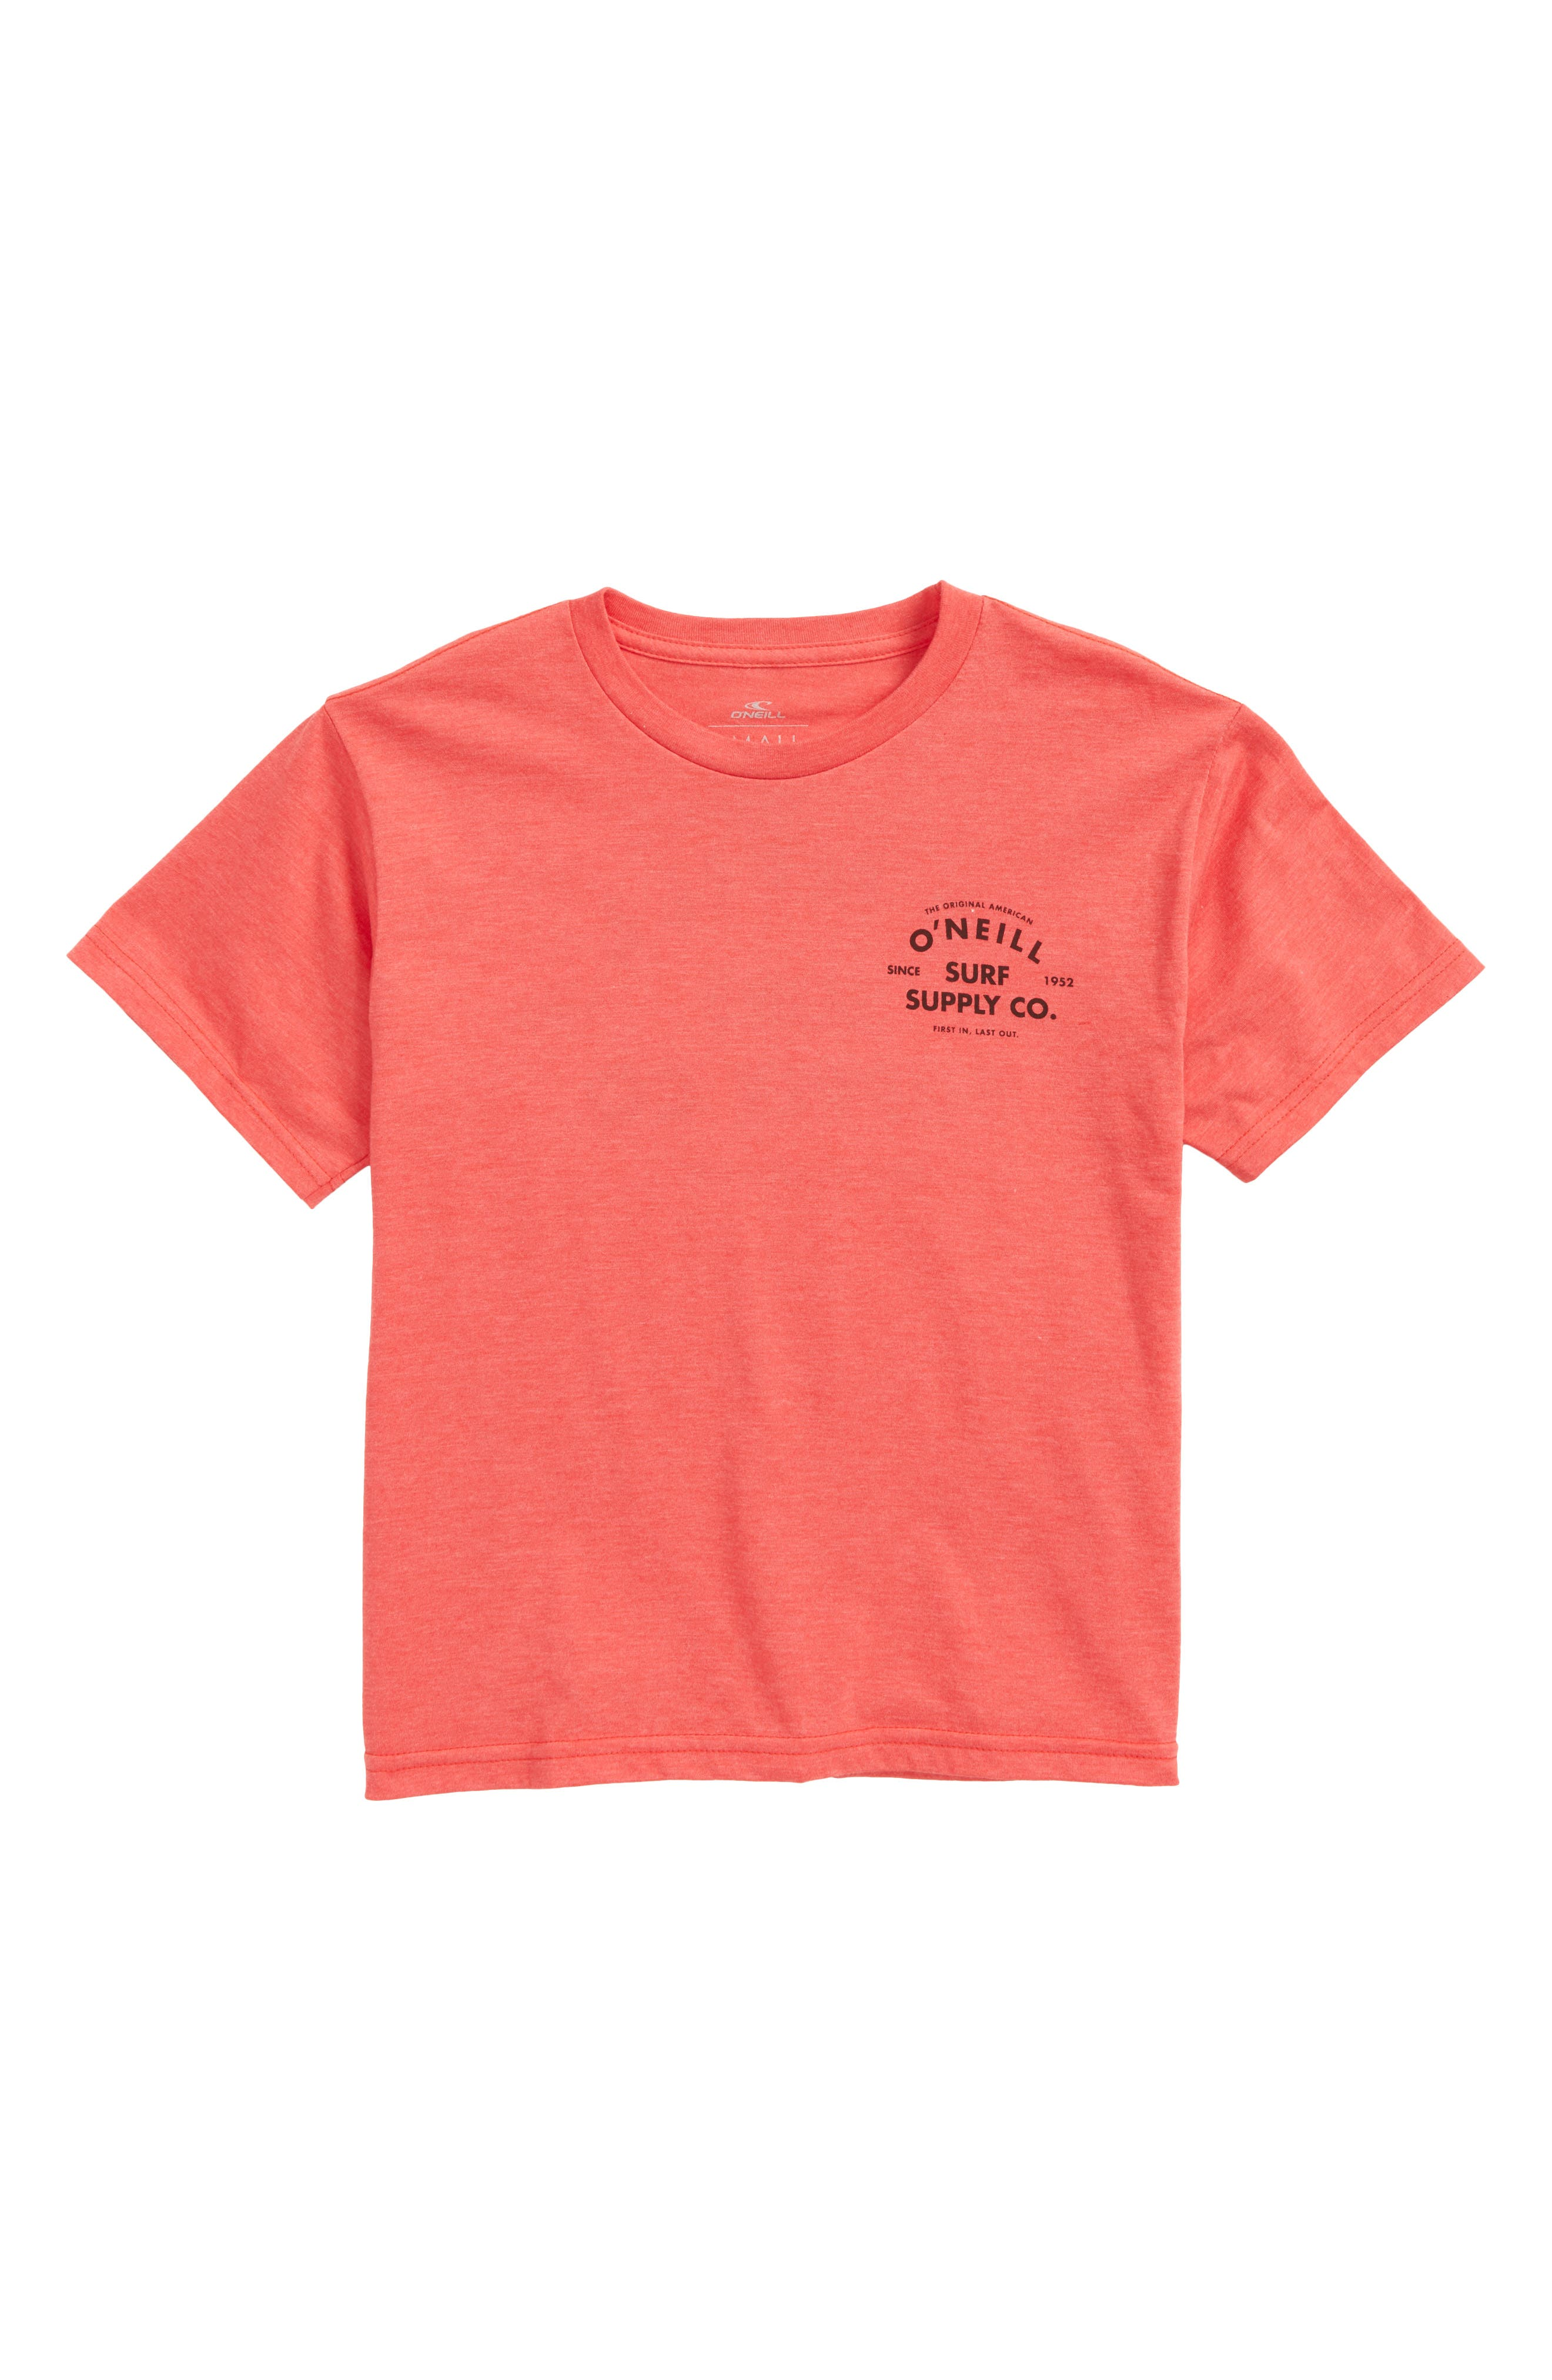 Gonner Graphic T-Shirt,                             Main thumbnail 1, color,                             Heather Red